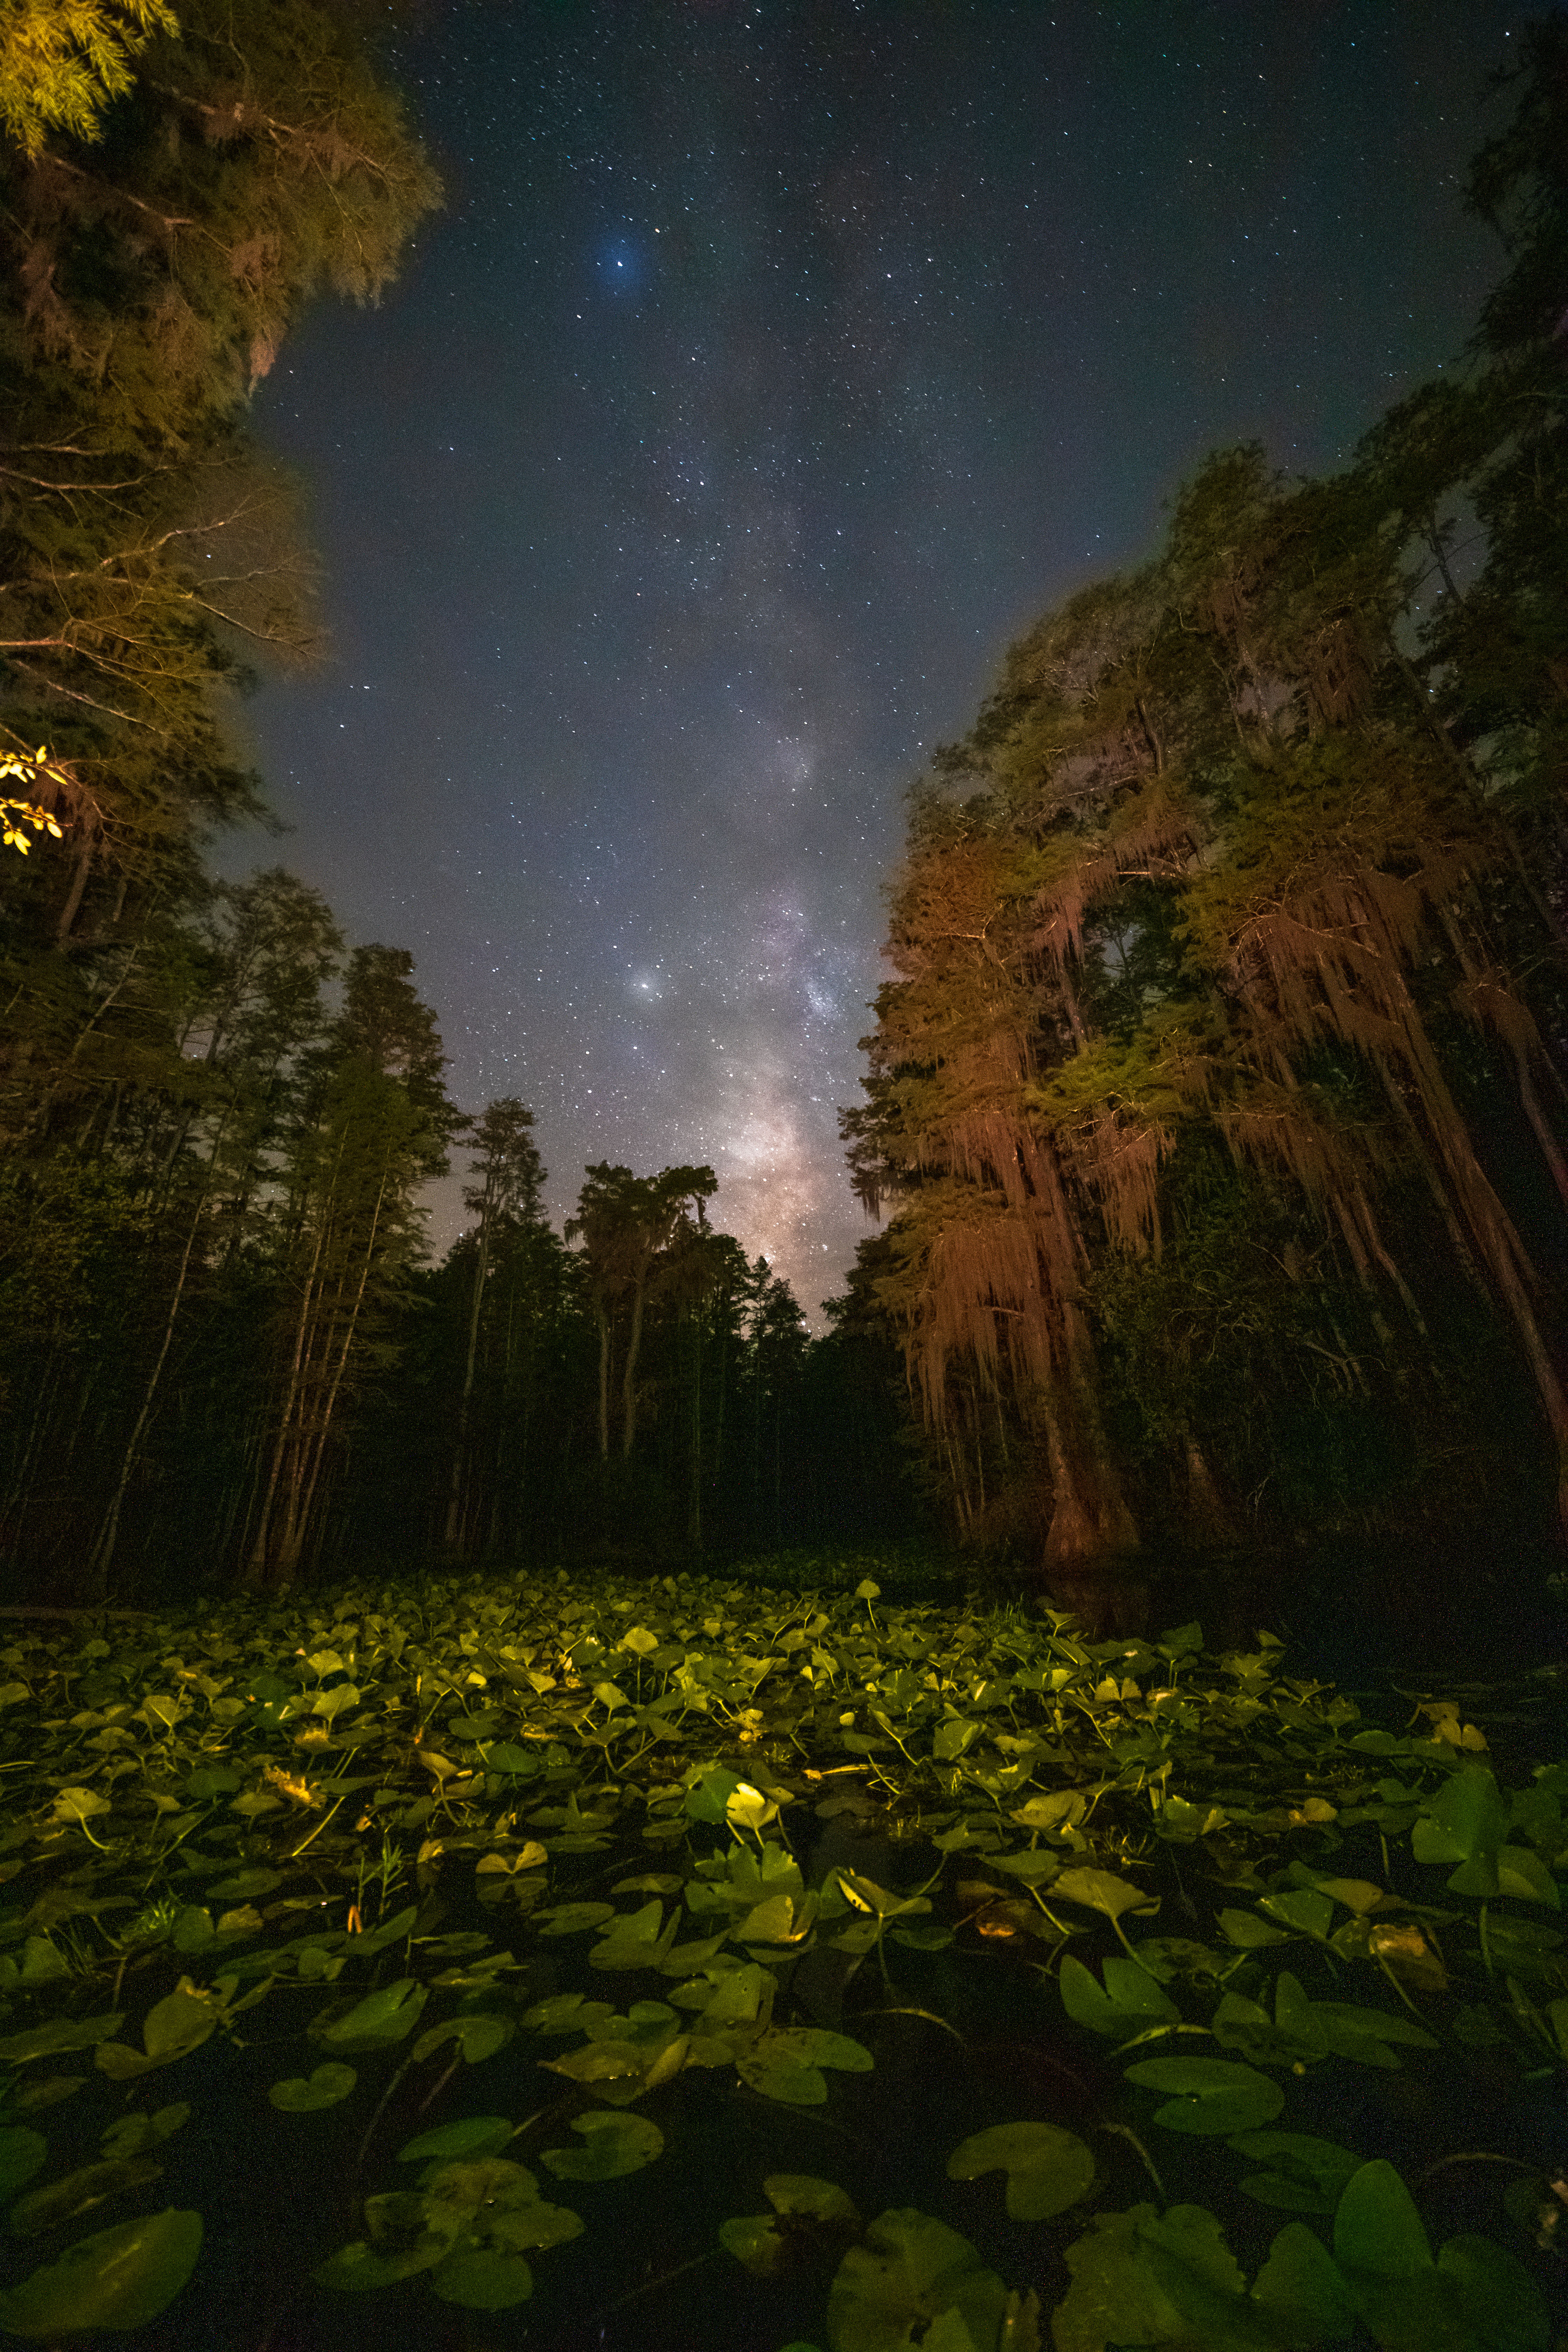 Lily pond in Okefenokee NWR